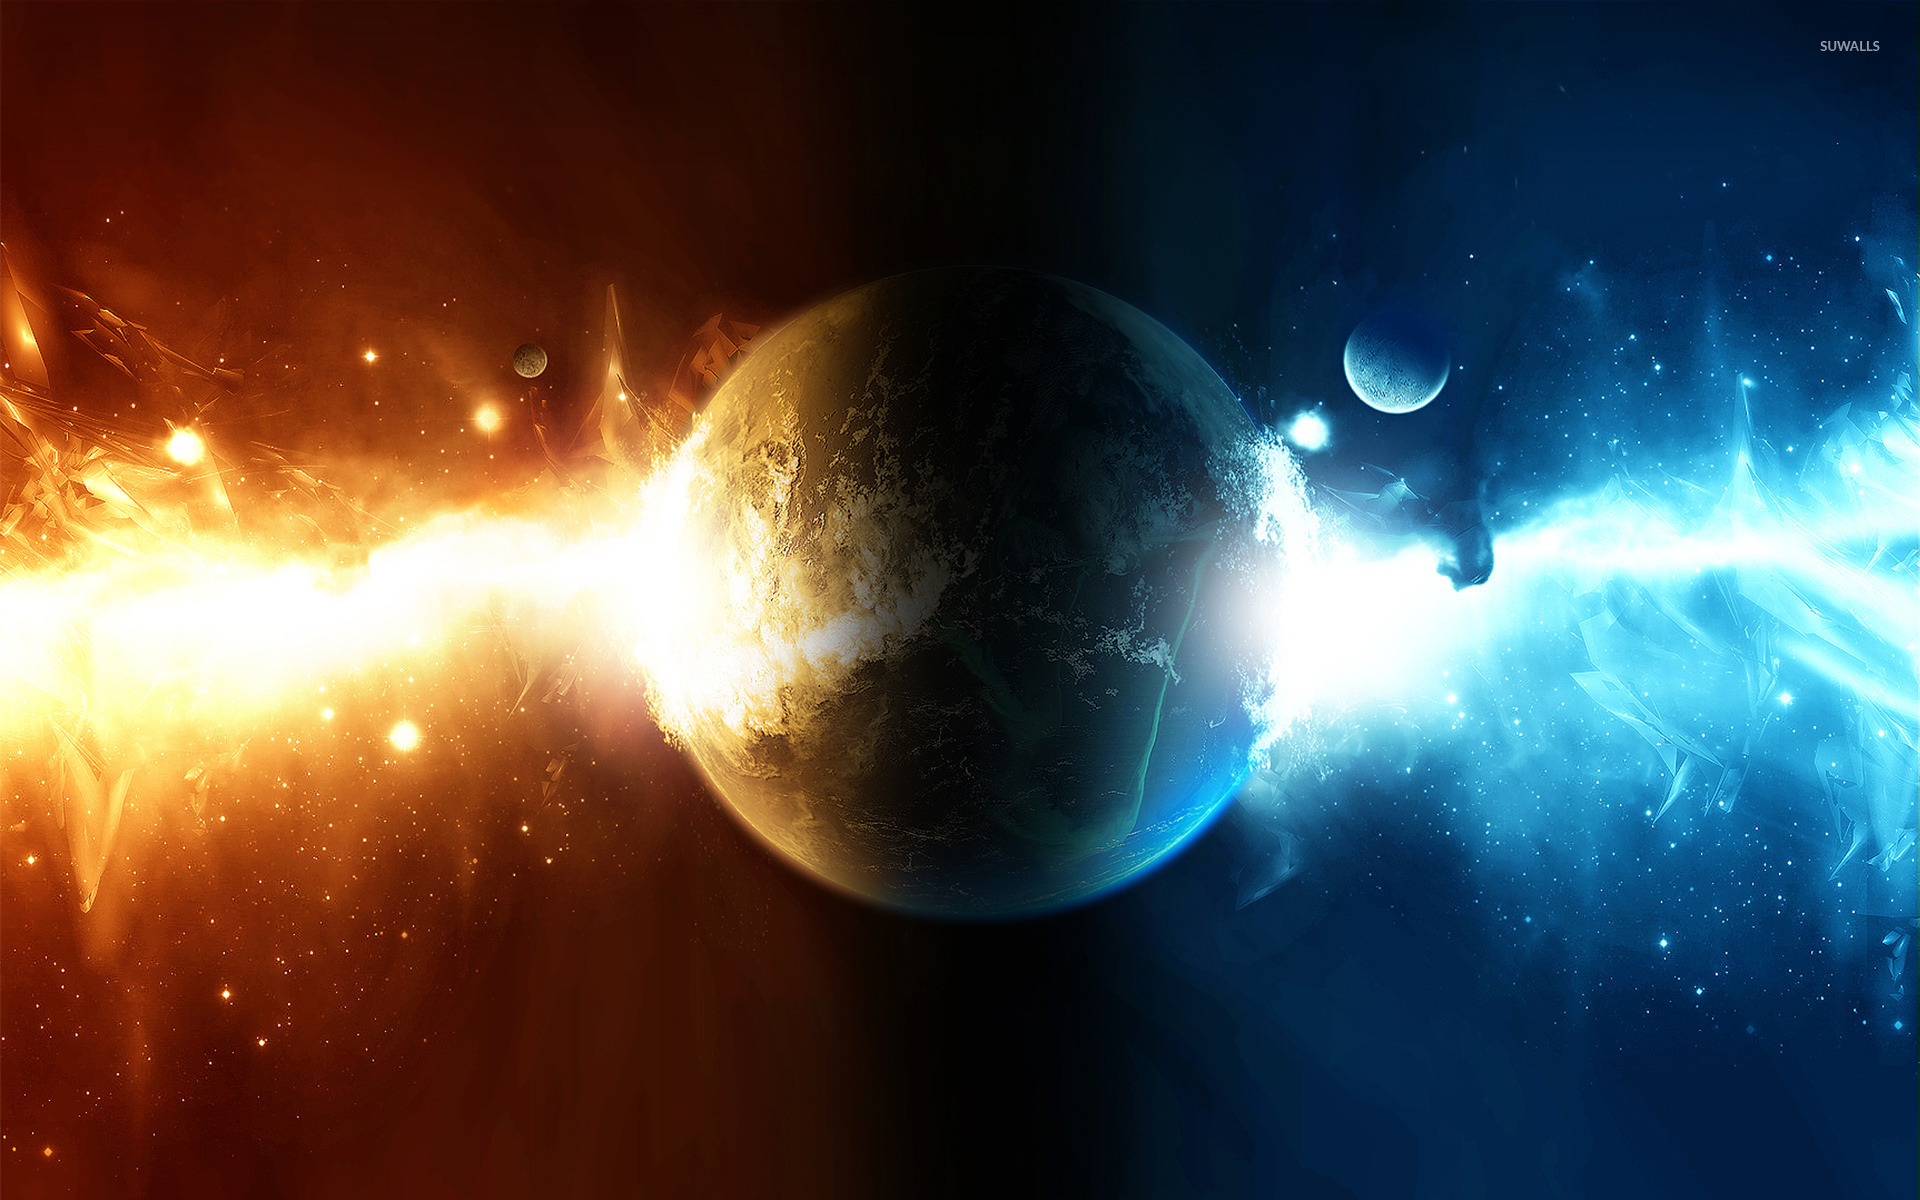 exploding planets wallpapersfor laptops - photo #6